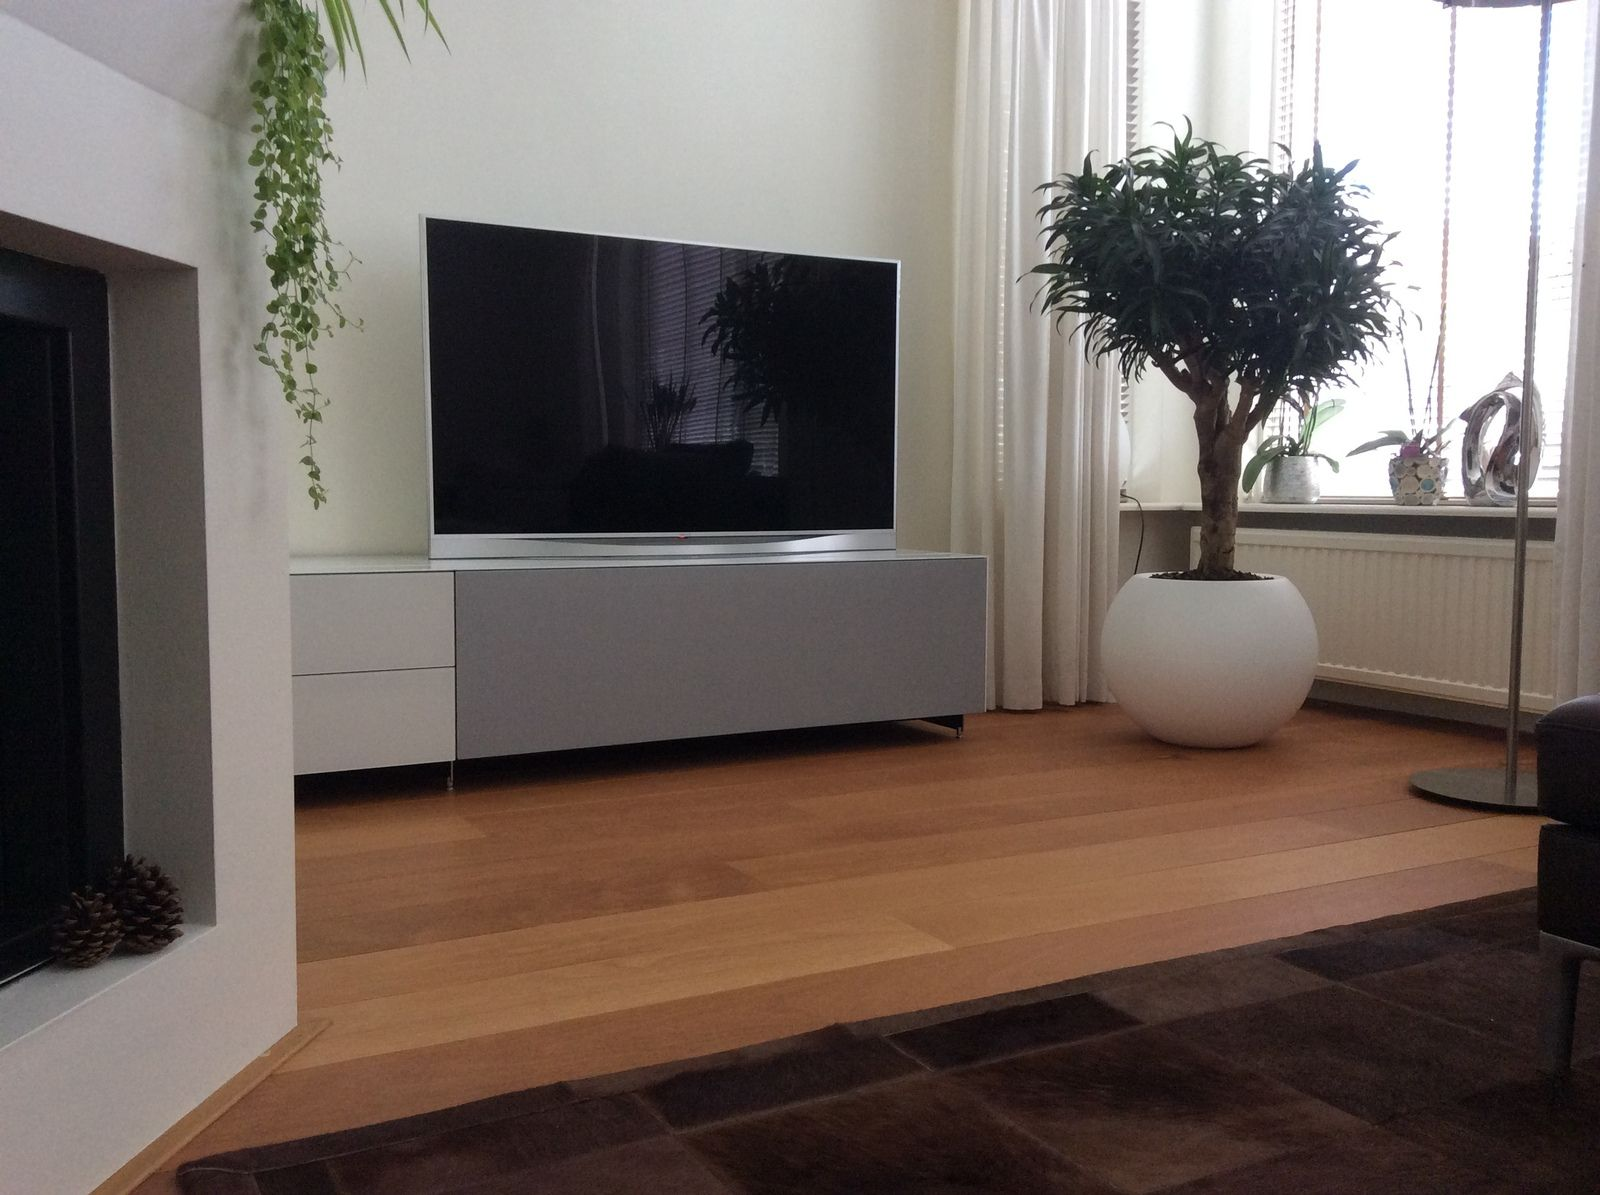 Spectral Cocoon spectral cocoon co1002 interieur